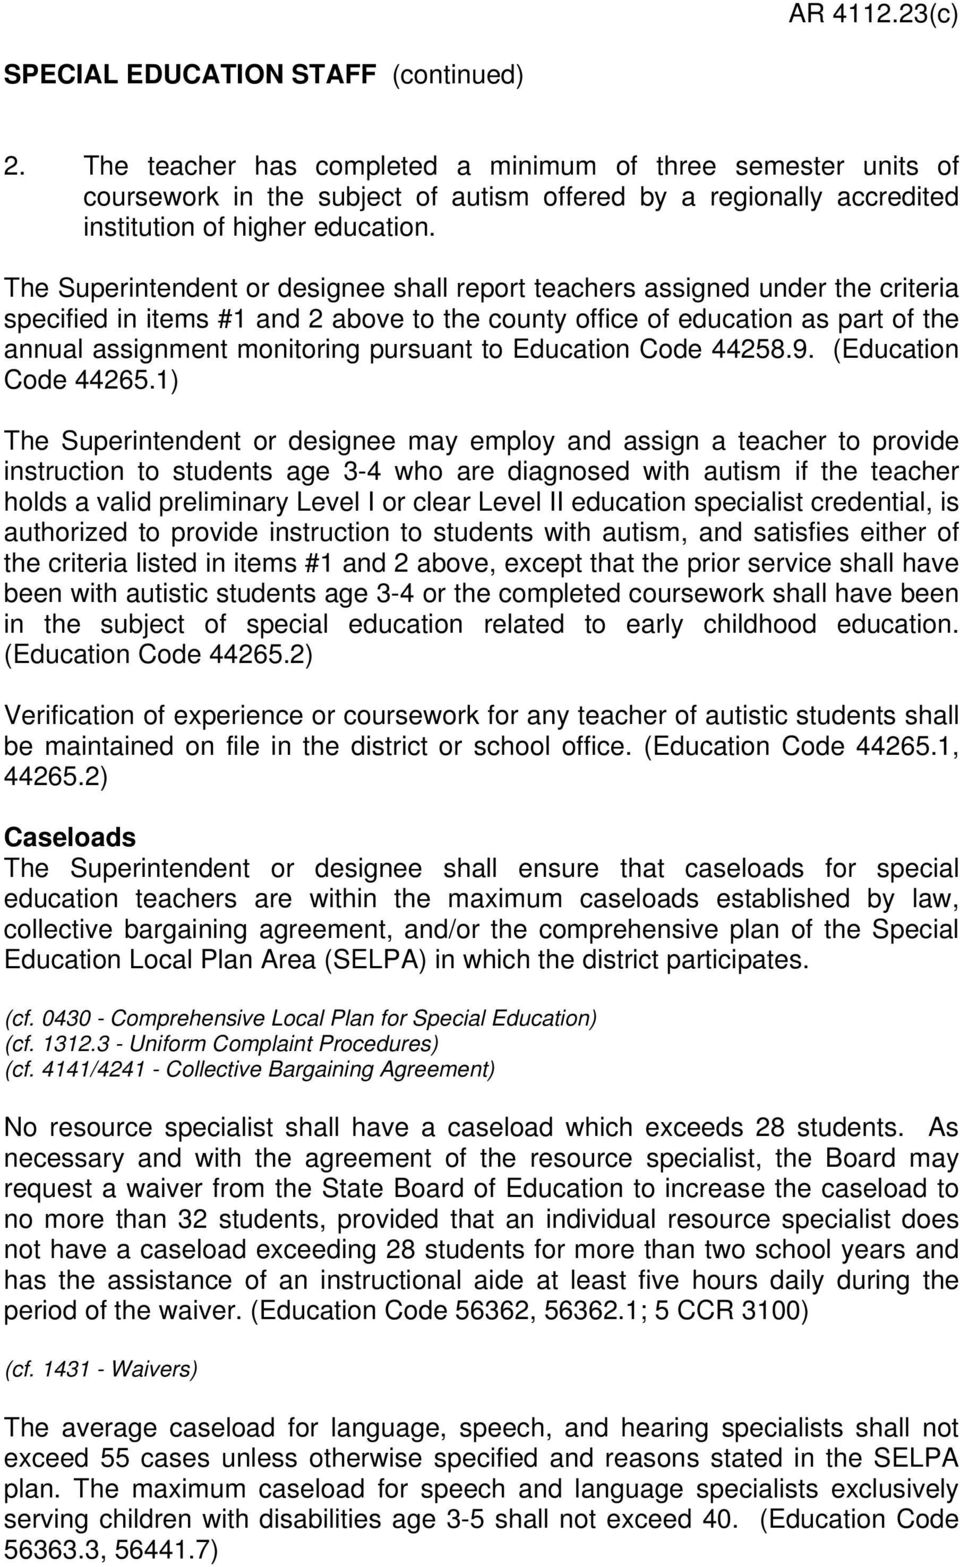 pursuant to Education Code 44258.9. (Education Code 44265.